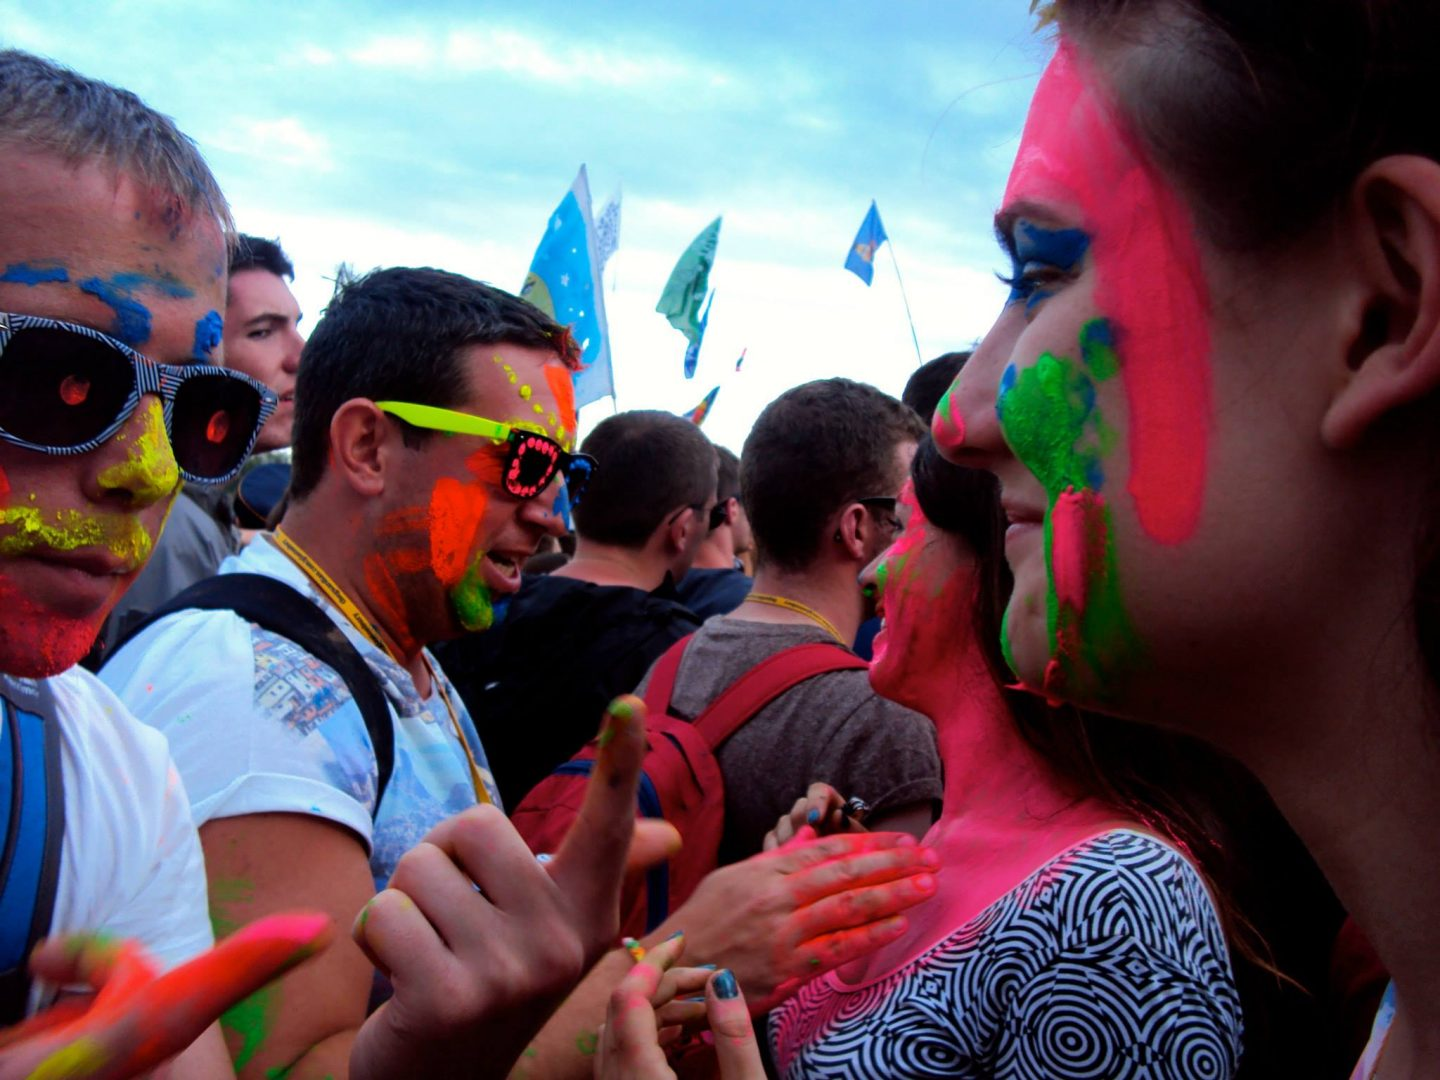 Face painting in the crowd